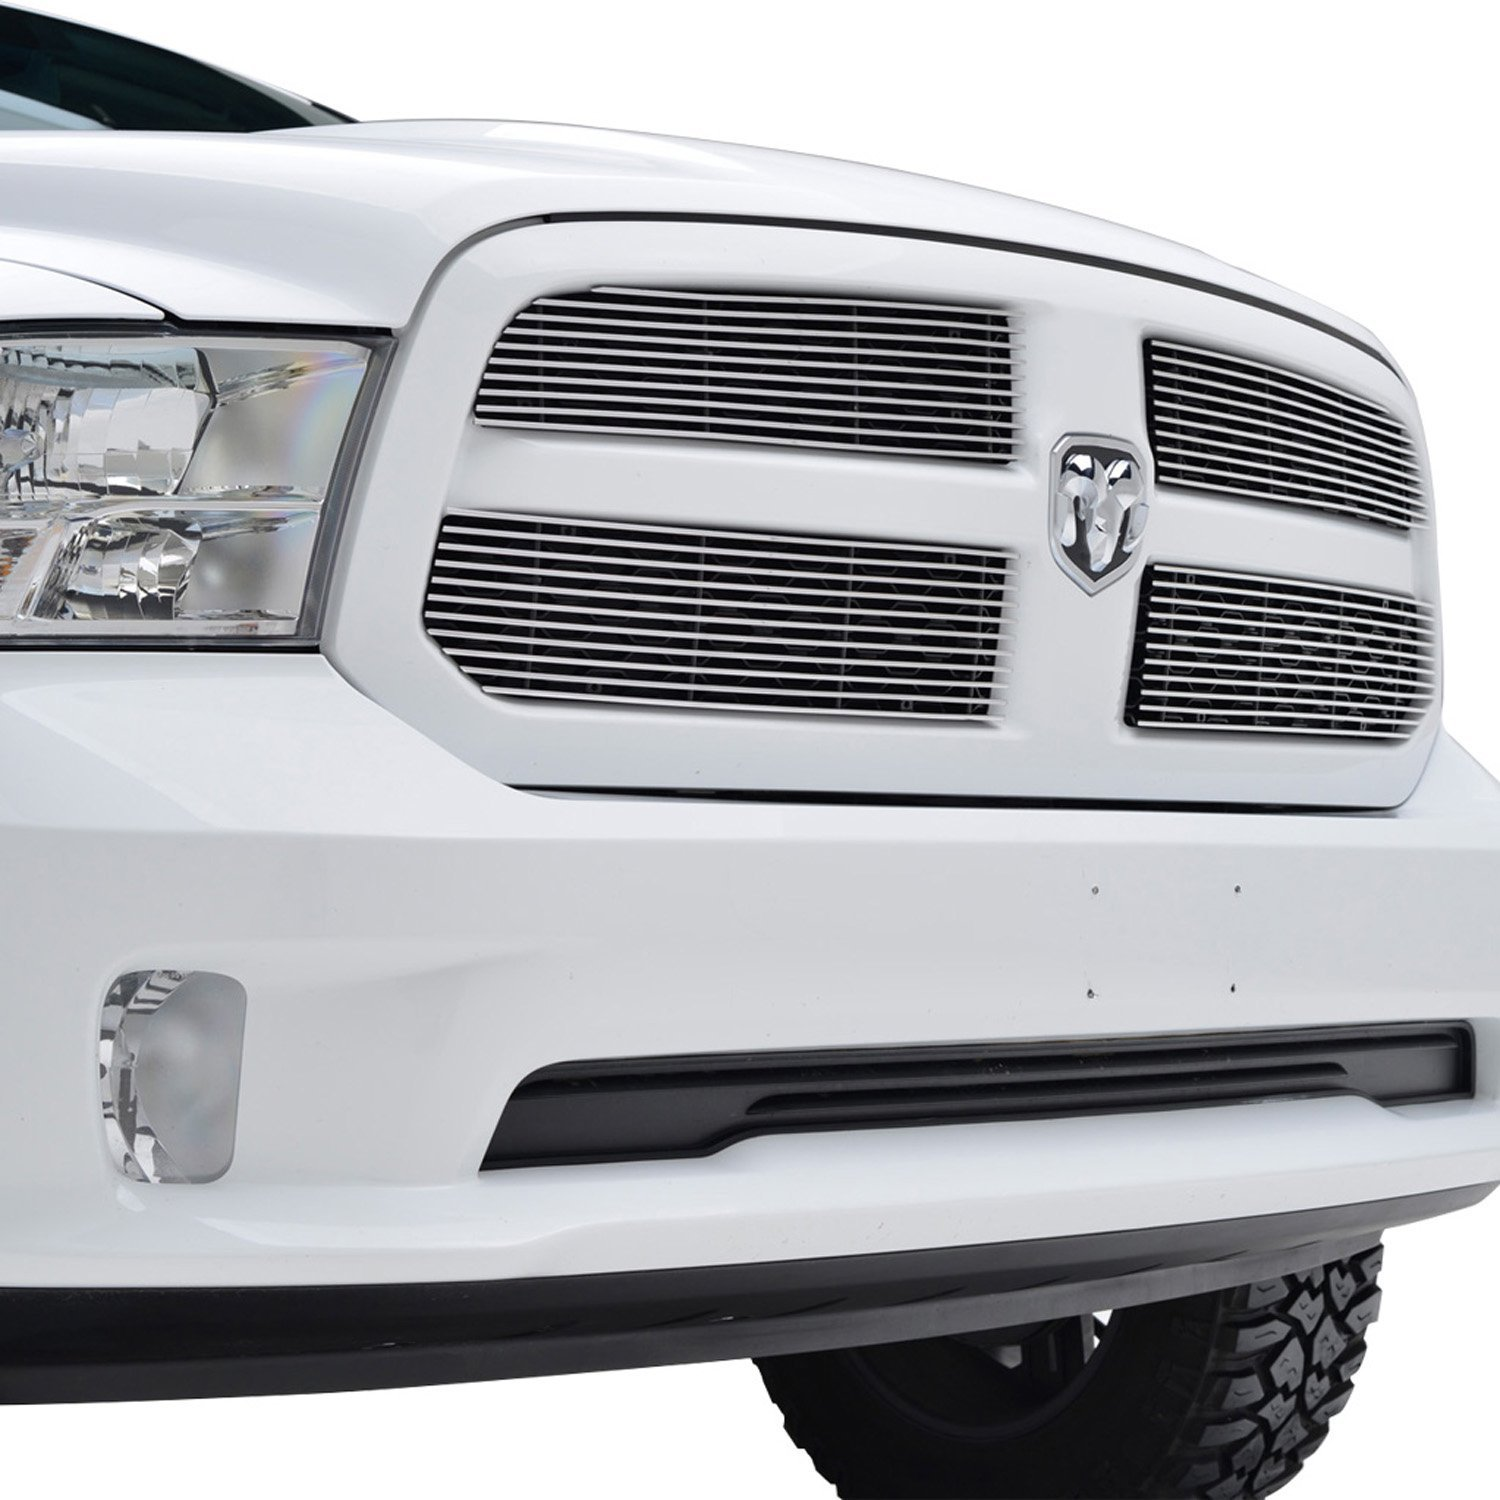 Paramount Automotive Chrome Paramount Restyling 32-0209 13-16 Dodge Ram 1500 Horizontal Billet Overlay Grille Chrome-4pc